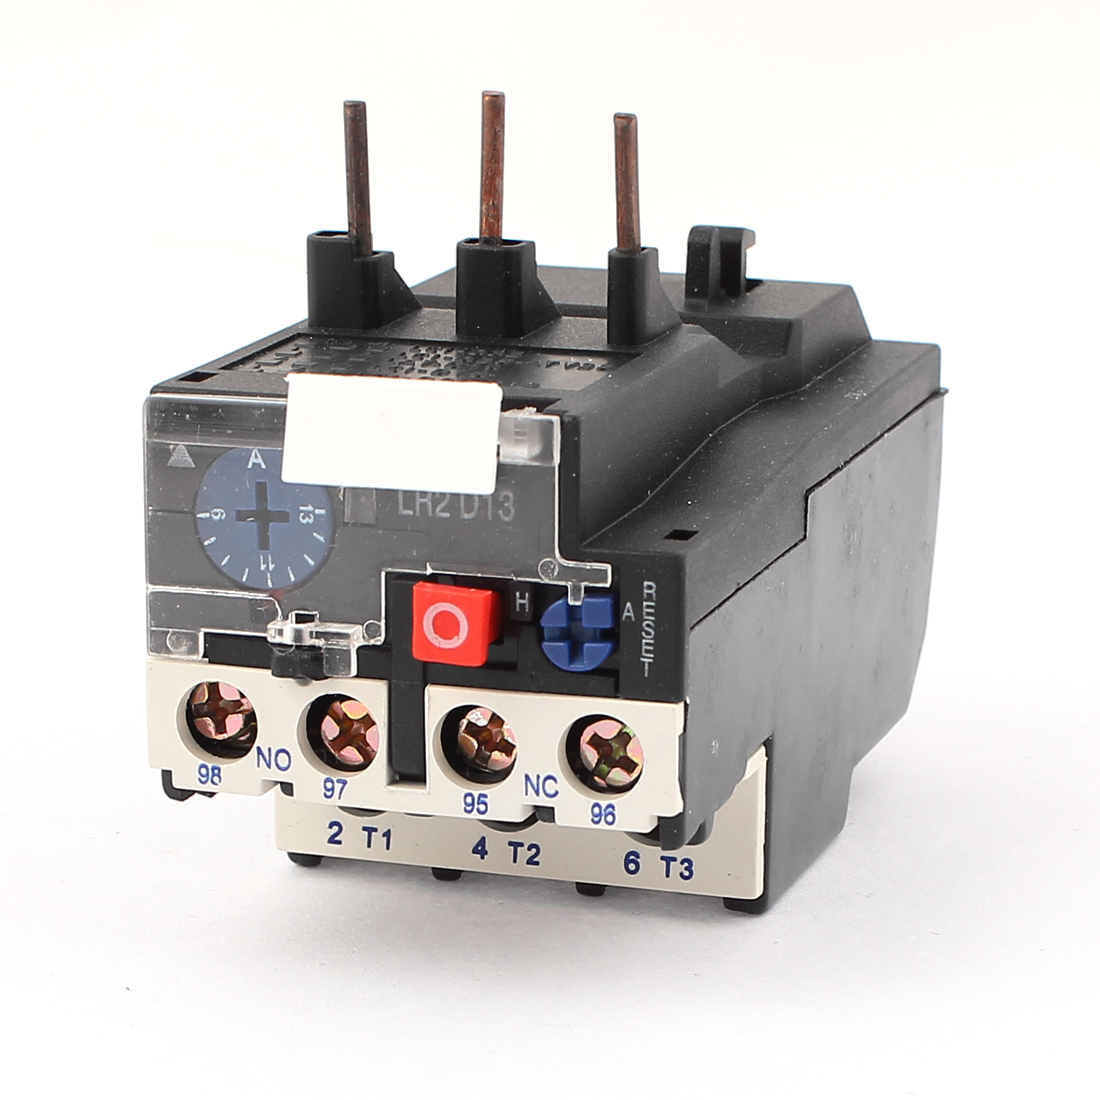 JR28-25 13A 1NO 1NC 3 Phases Adjustable Motor Protector Electric Thermal Overload Relay